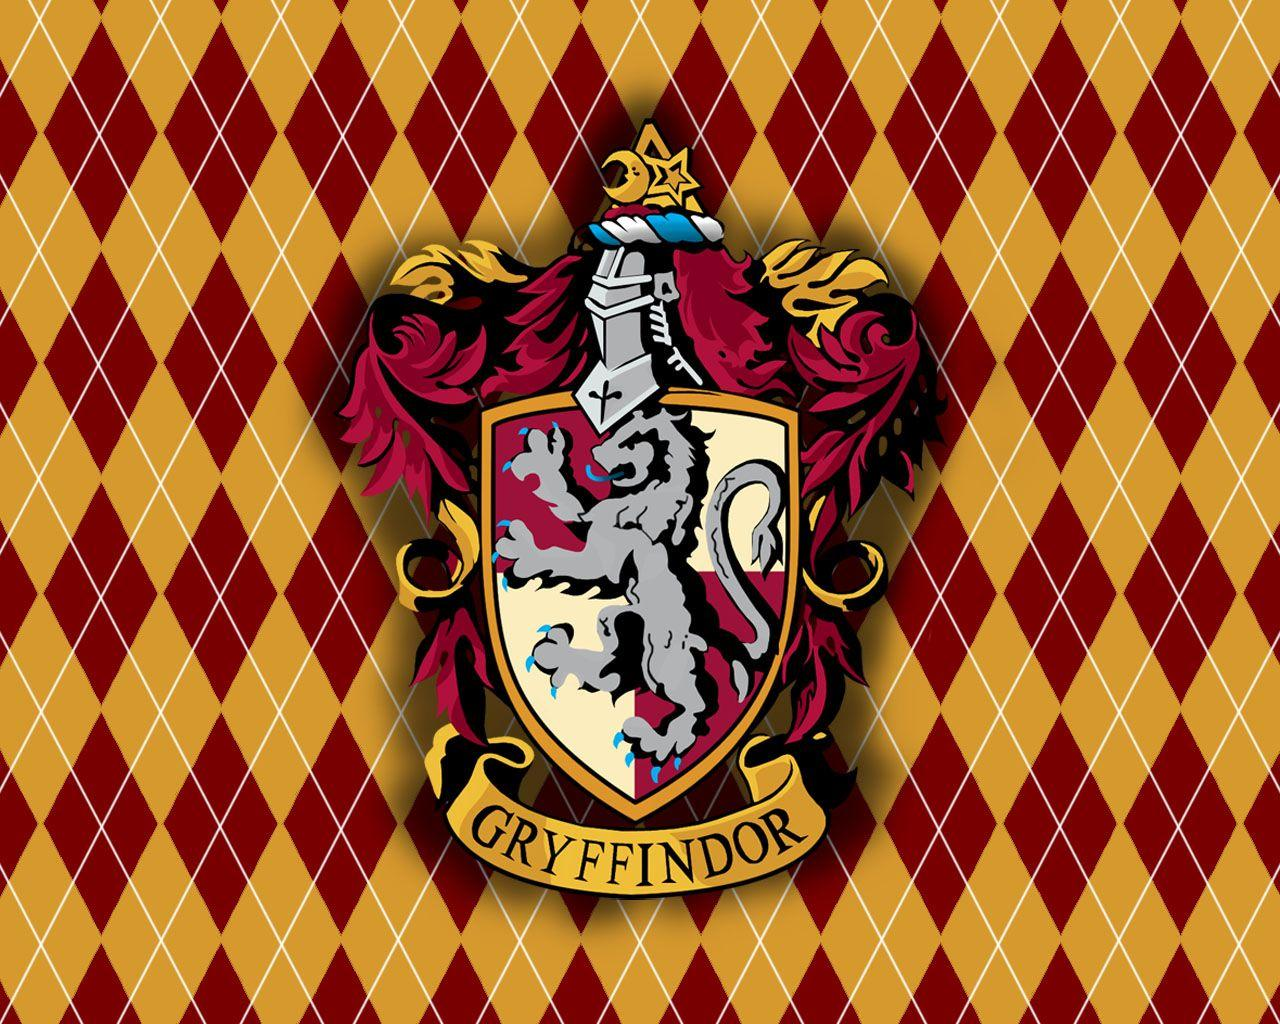 Gryffindor Wallpapers [1280x1024